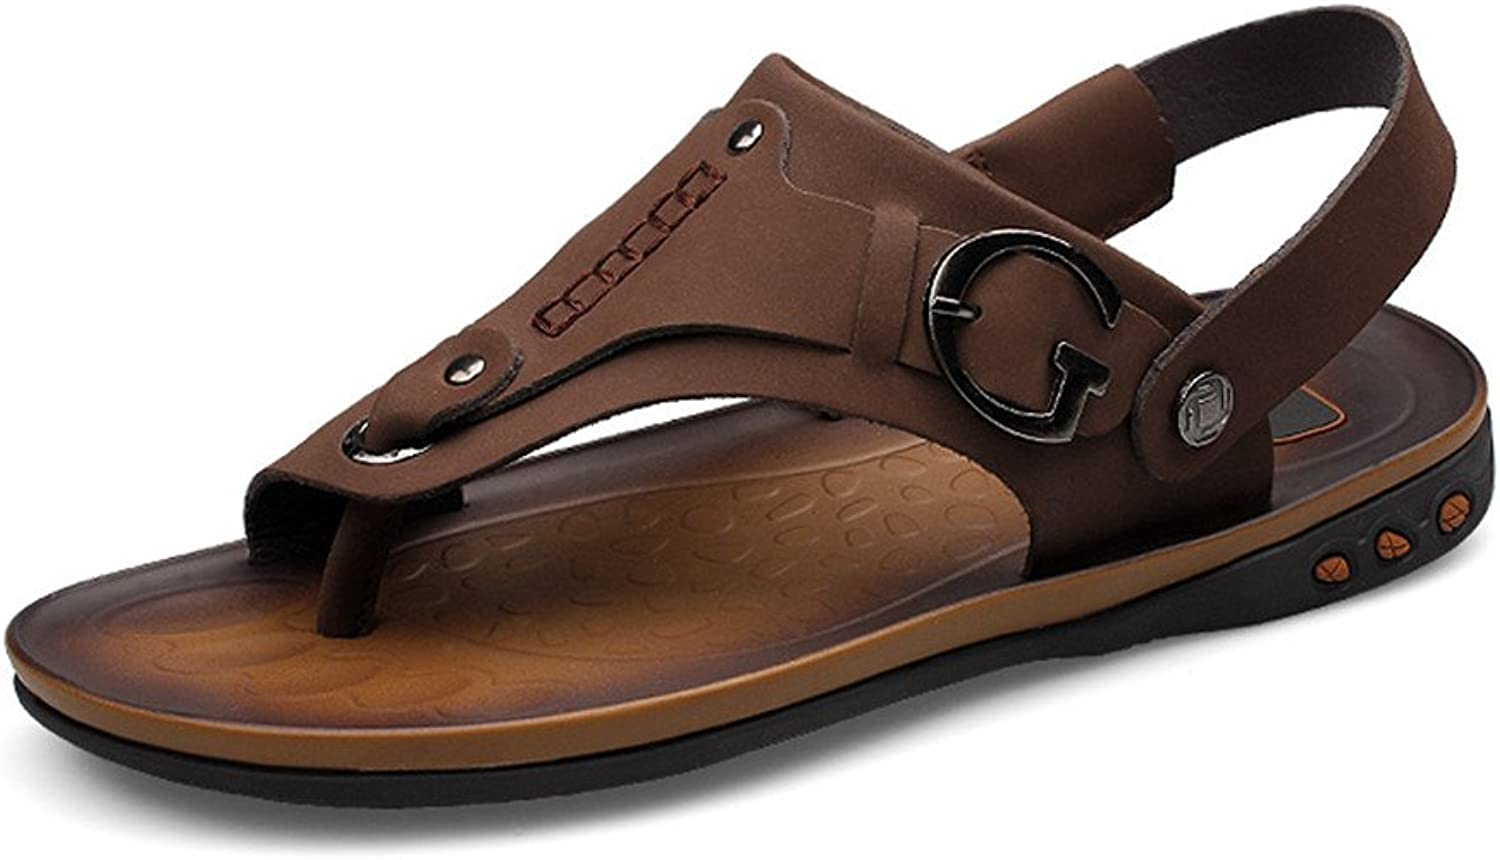 Sandals Men's Flat shoes with Sandals Switch Backless shoes Comfortable Soles Summer Beach Leather Slip Sandalss Sandals (color   Brown, Size   6 UK)